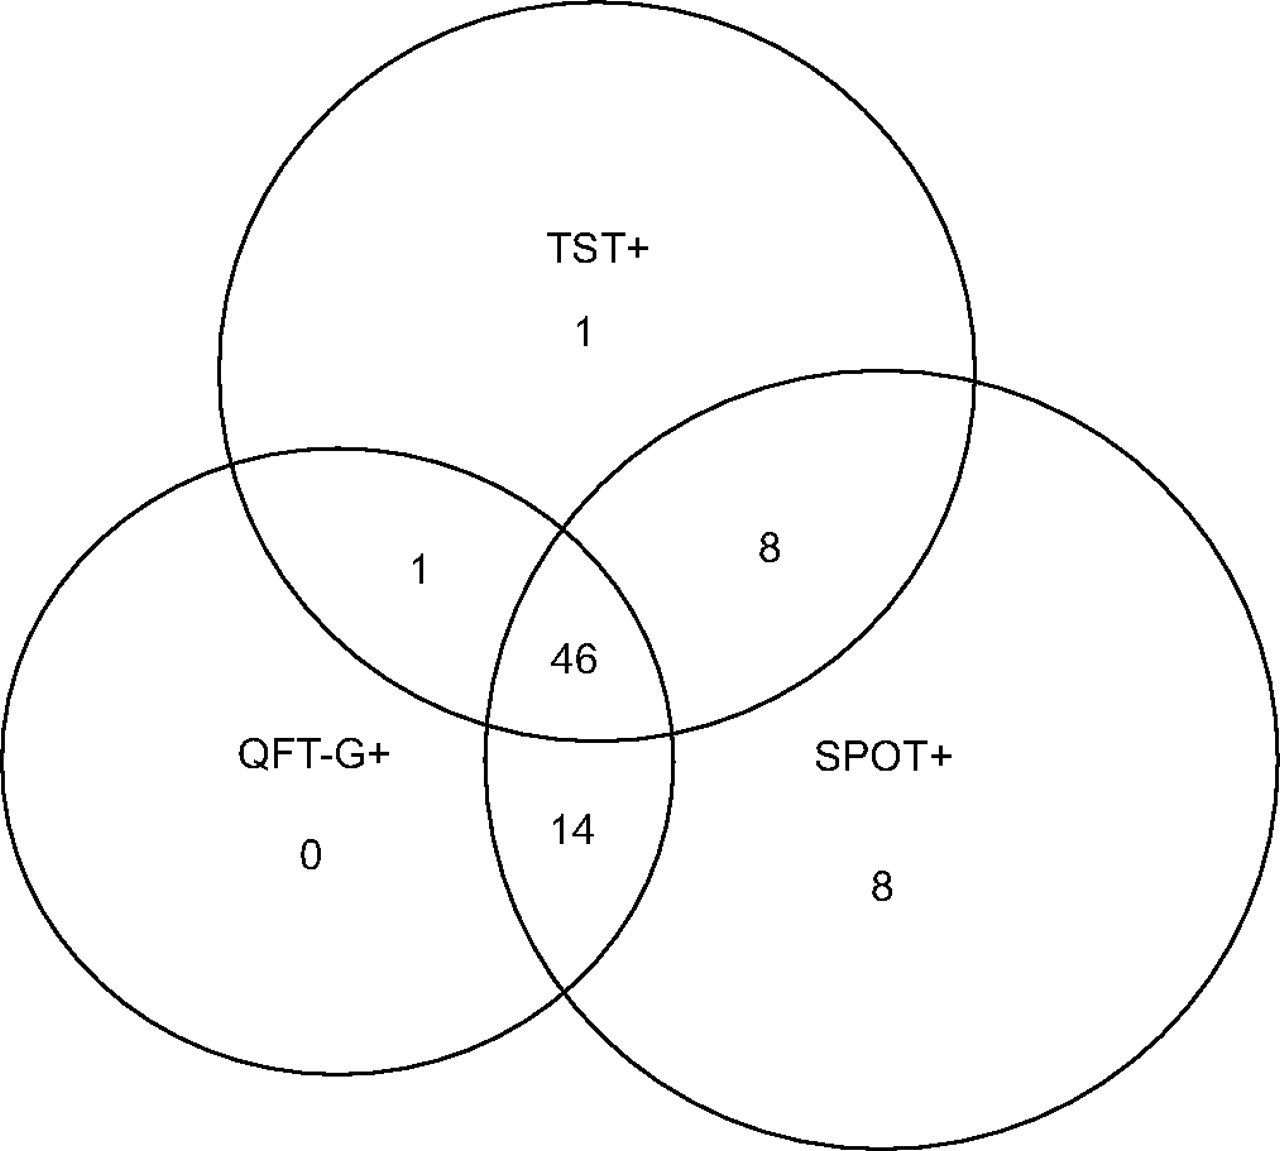 Comparison Of Two Commercial Interferon Assays For Diagnosing Mycobacterium Tuberculosis